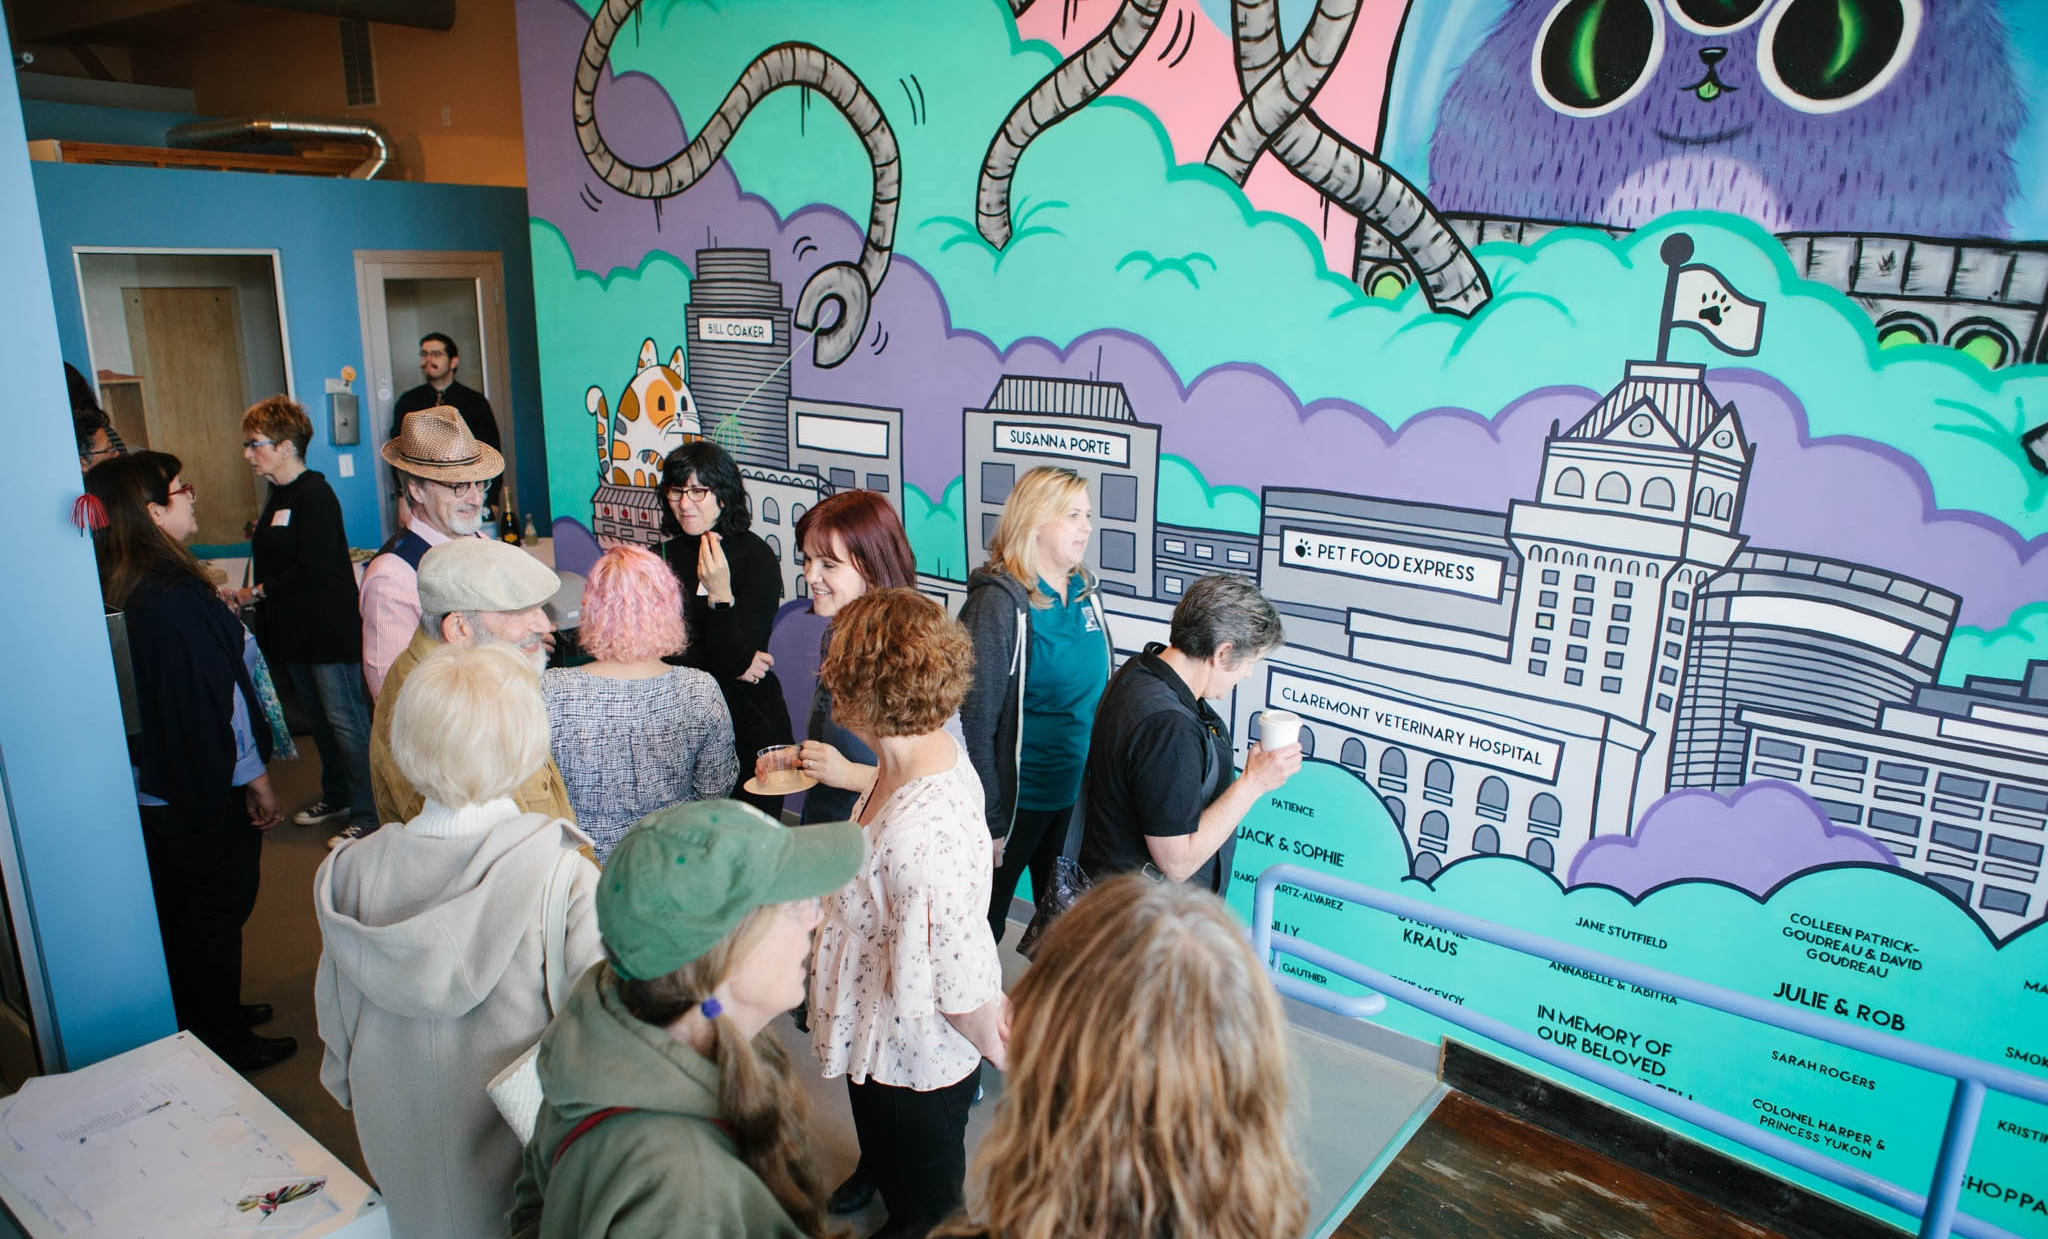 This mural honors our community, whose generosity goes above and beyond to help cats with nowhere else to turn.